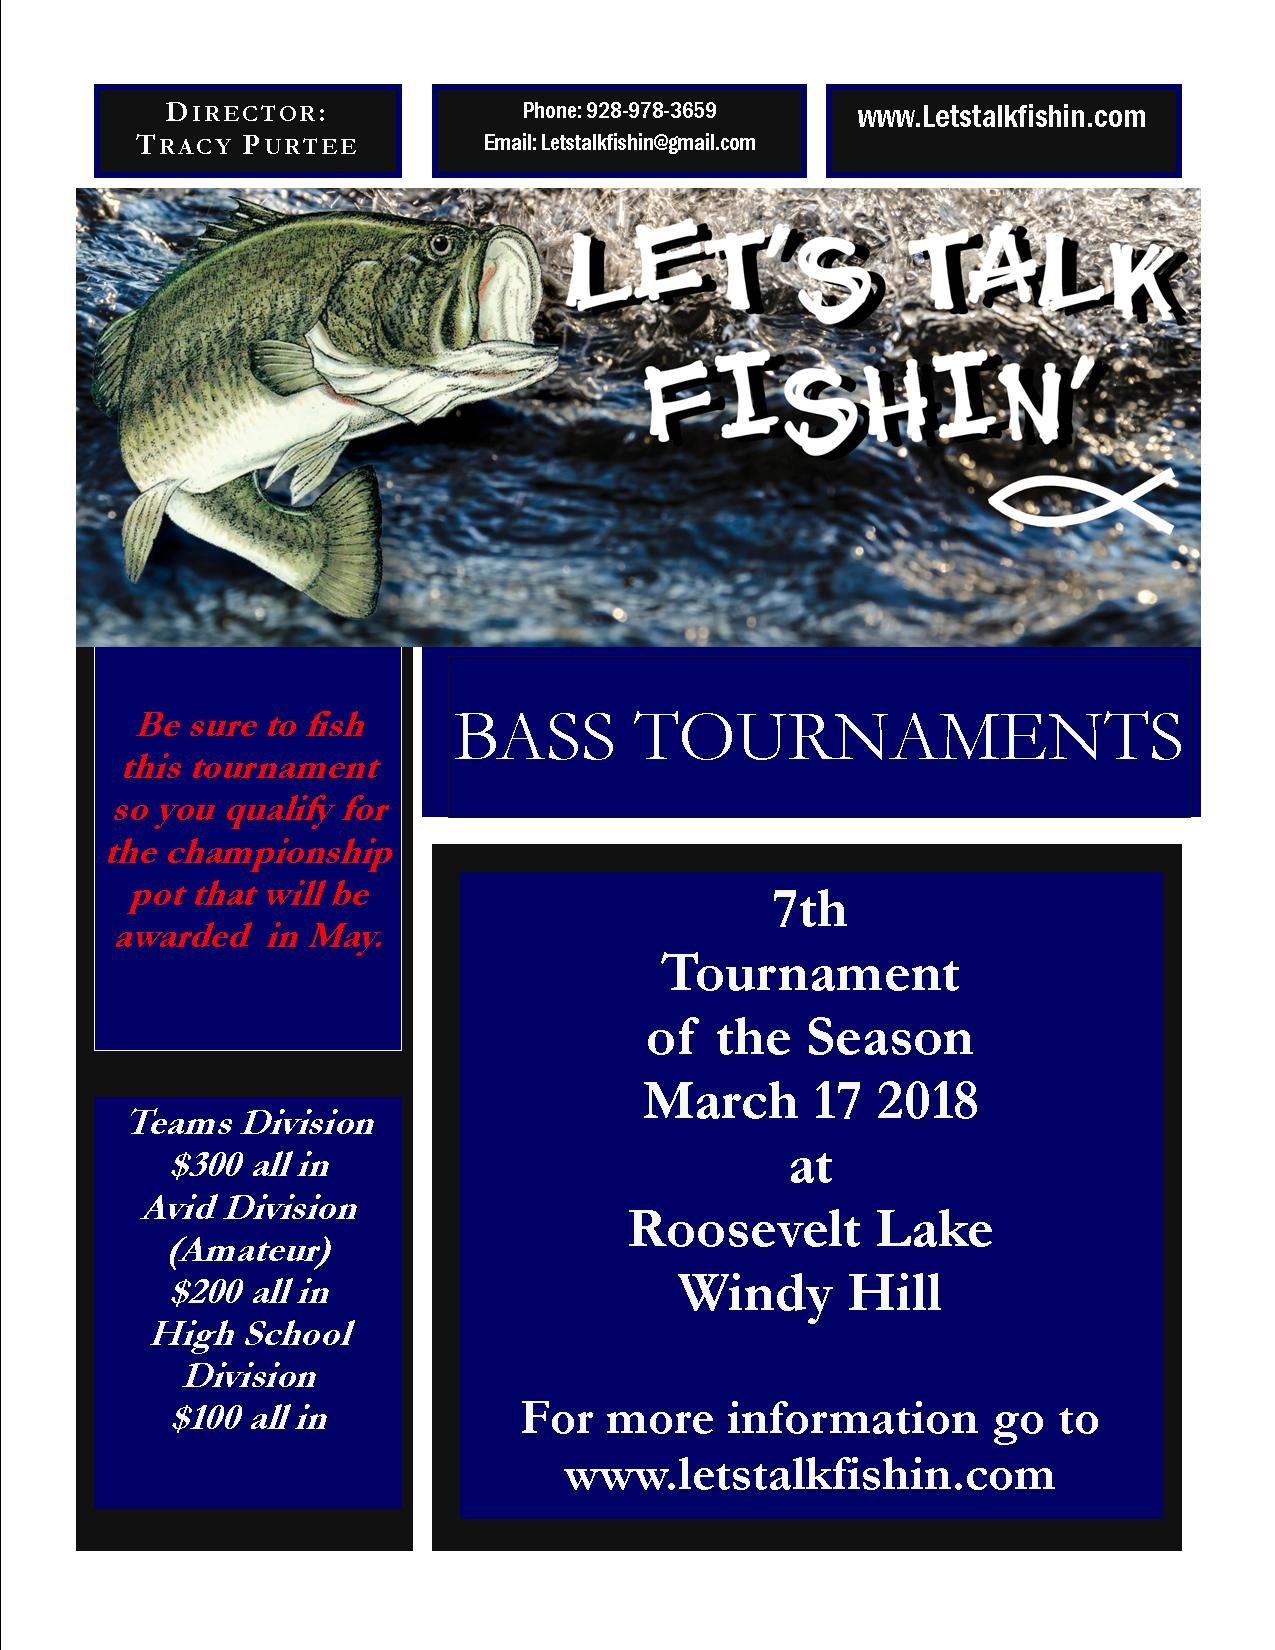 Click image for larger version  Name:7th Tournament.jpg Views:2210 Size:283.6 KB ID:96826